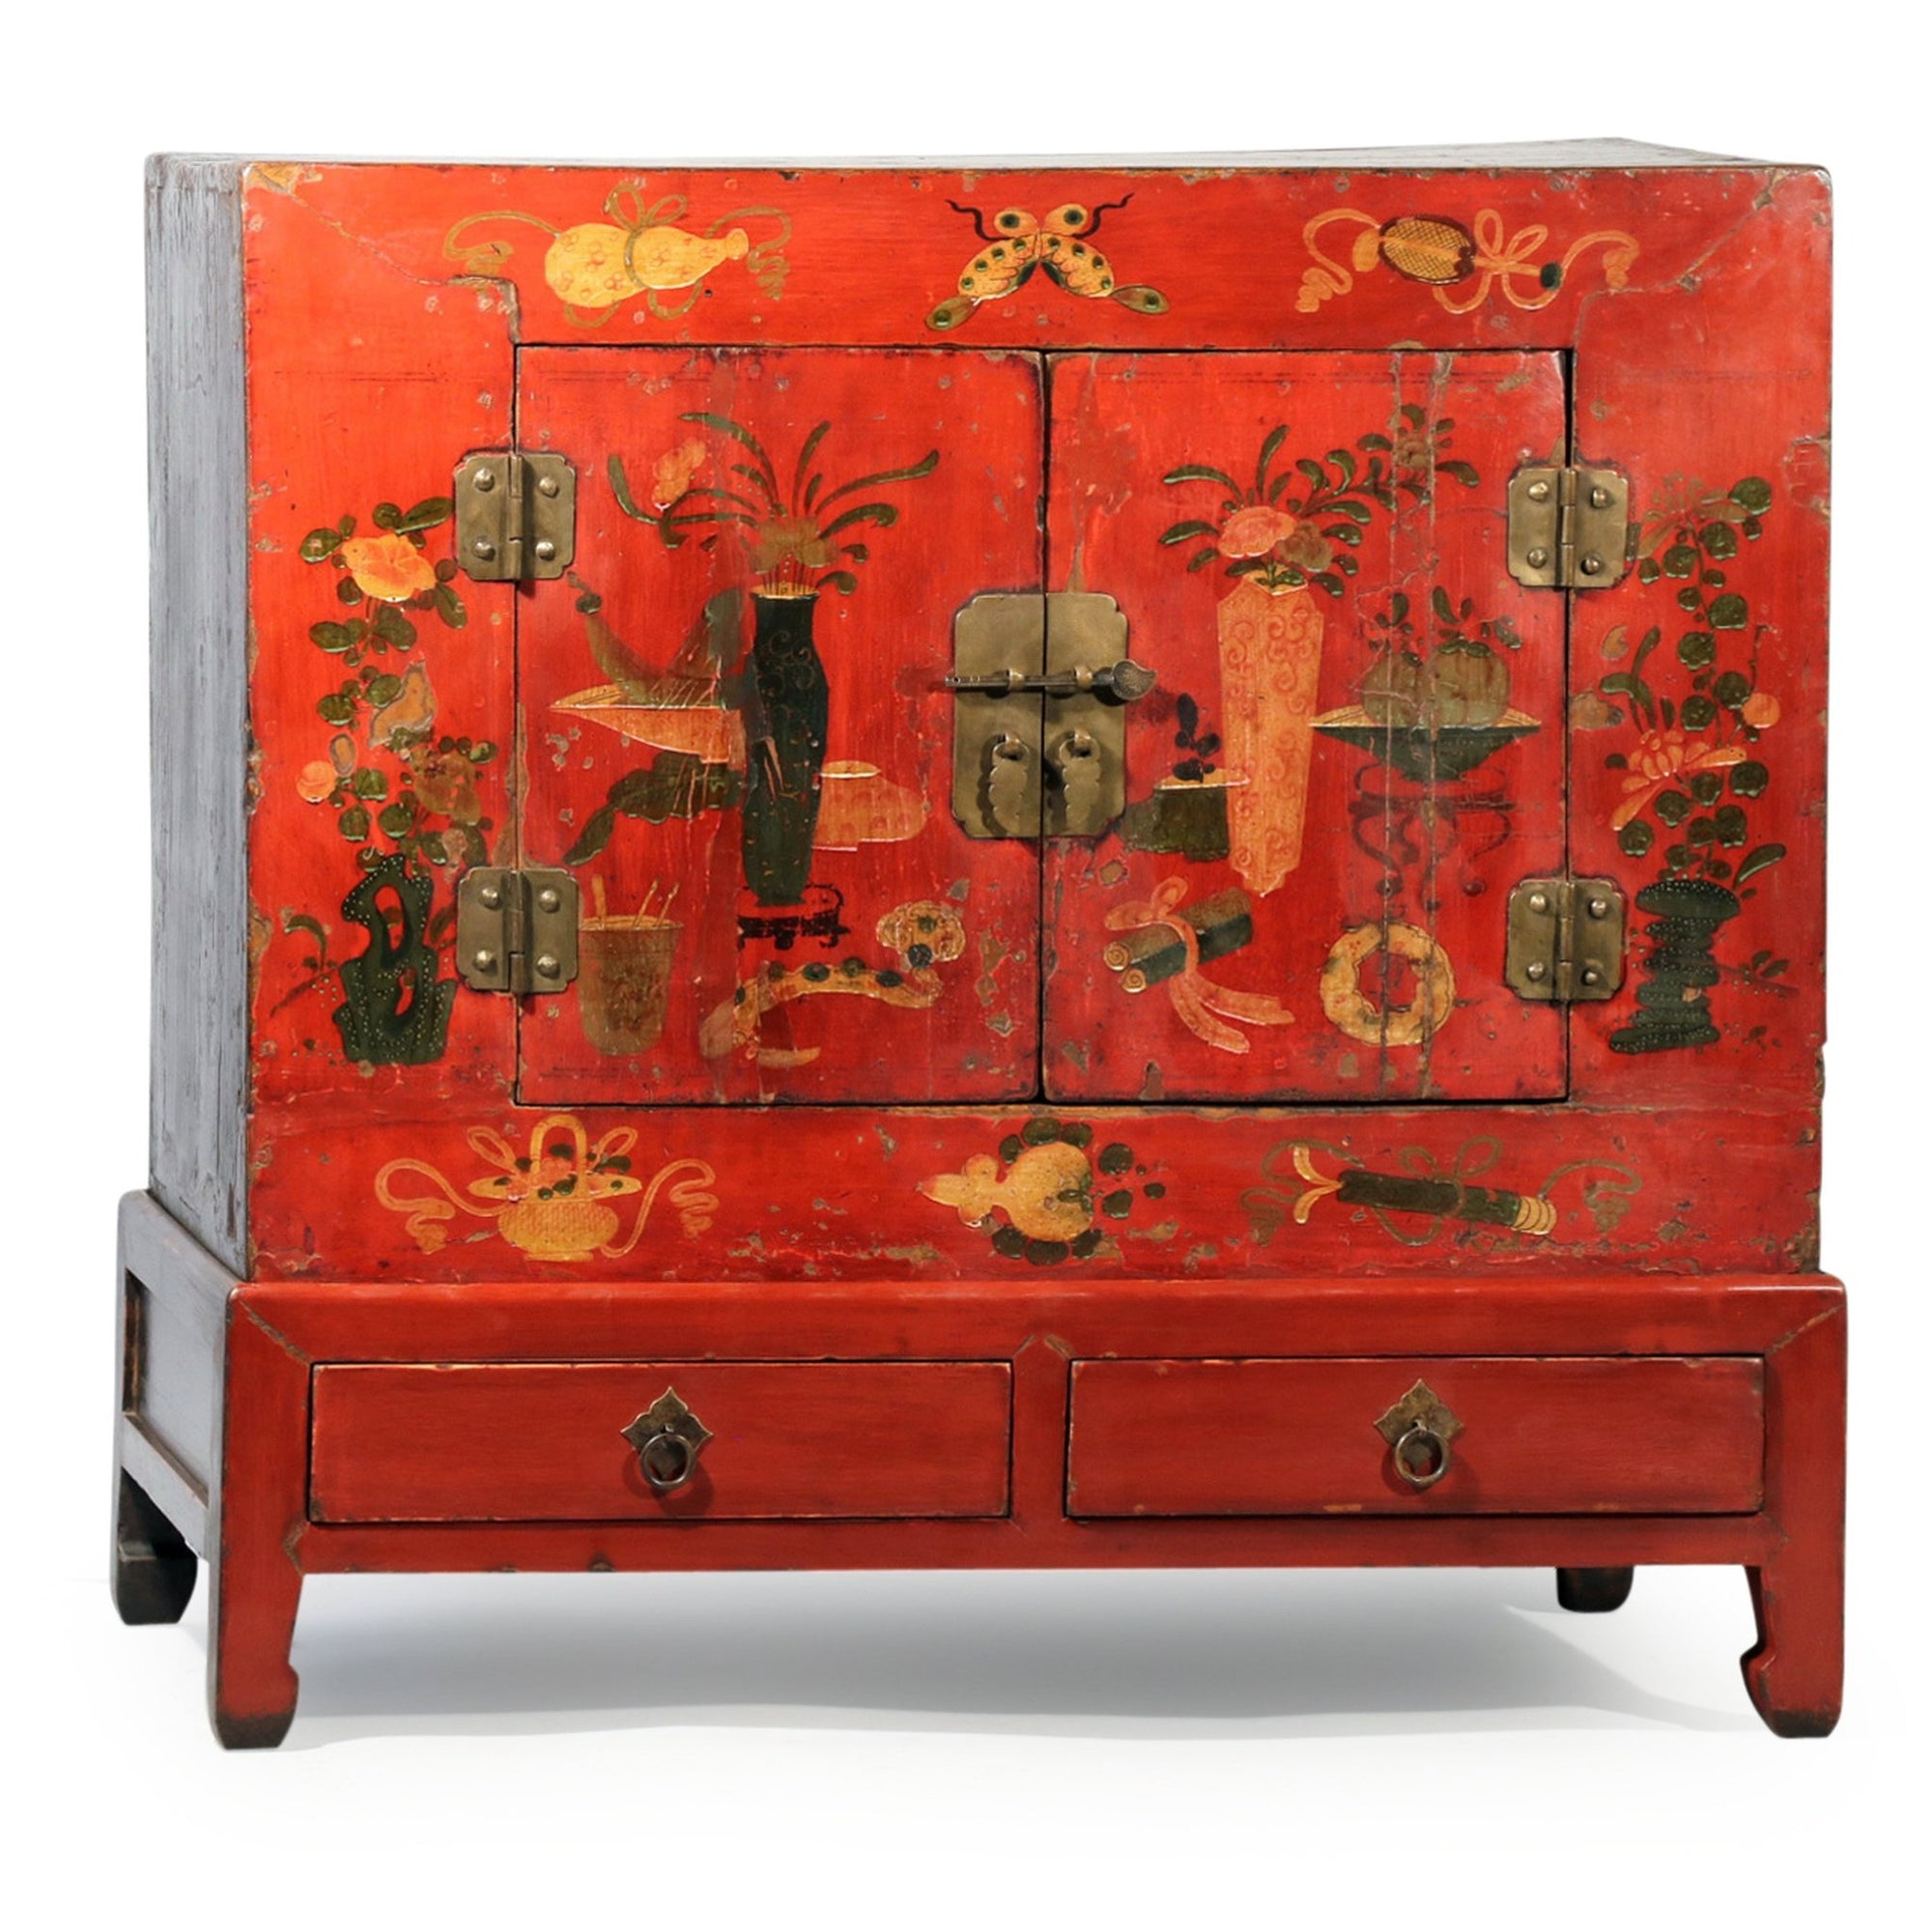 Painted Cabinet On Stand From Gansu - Ca 90 yrs old | Indigo Oriental Antiques